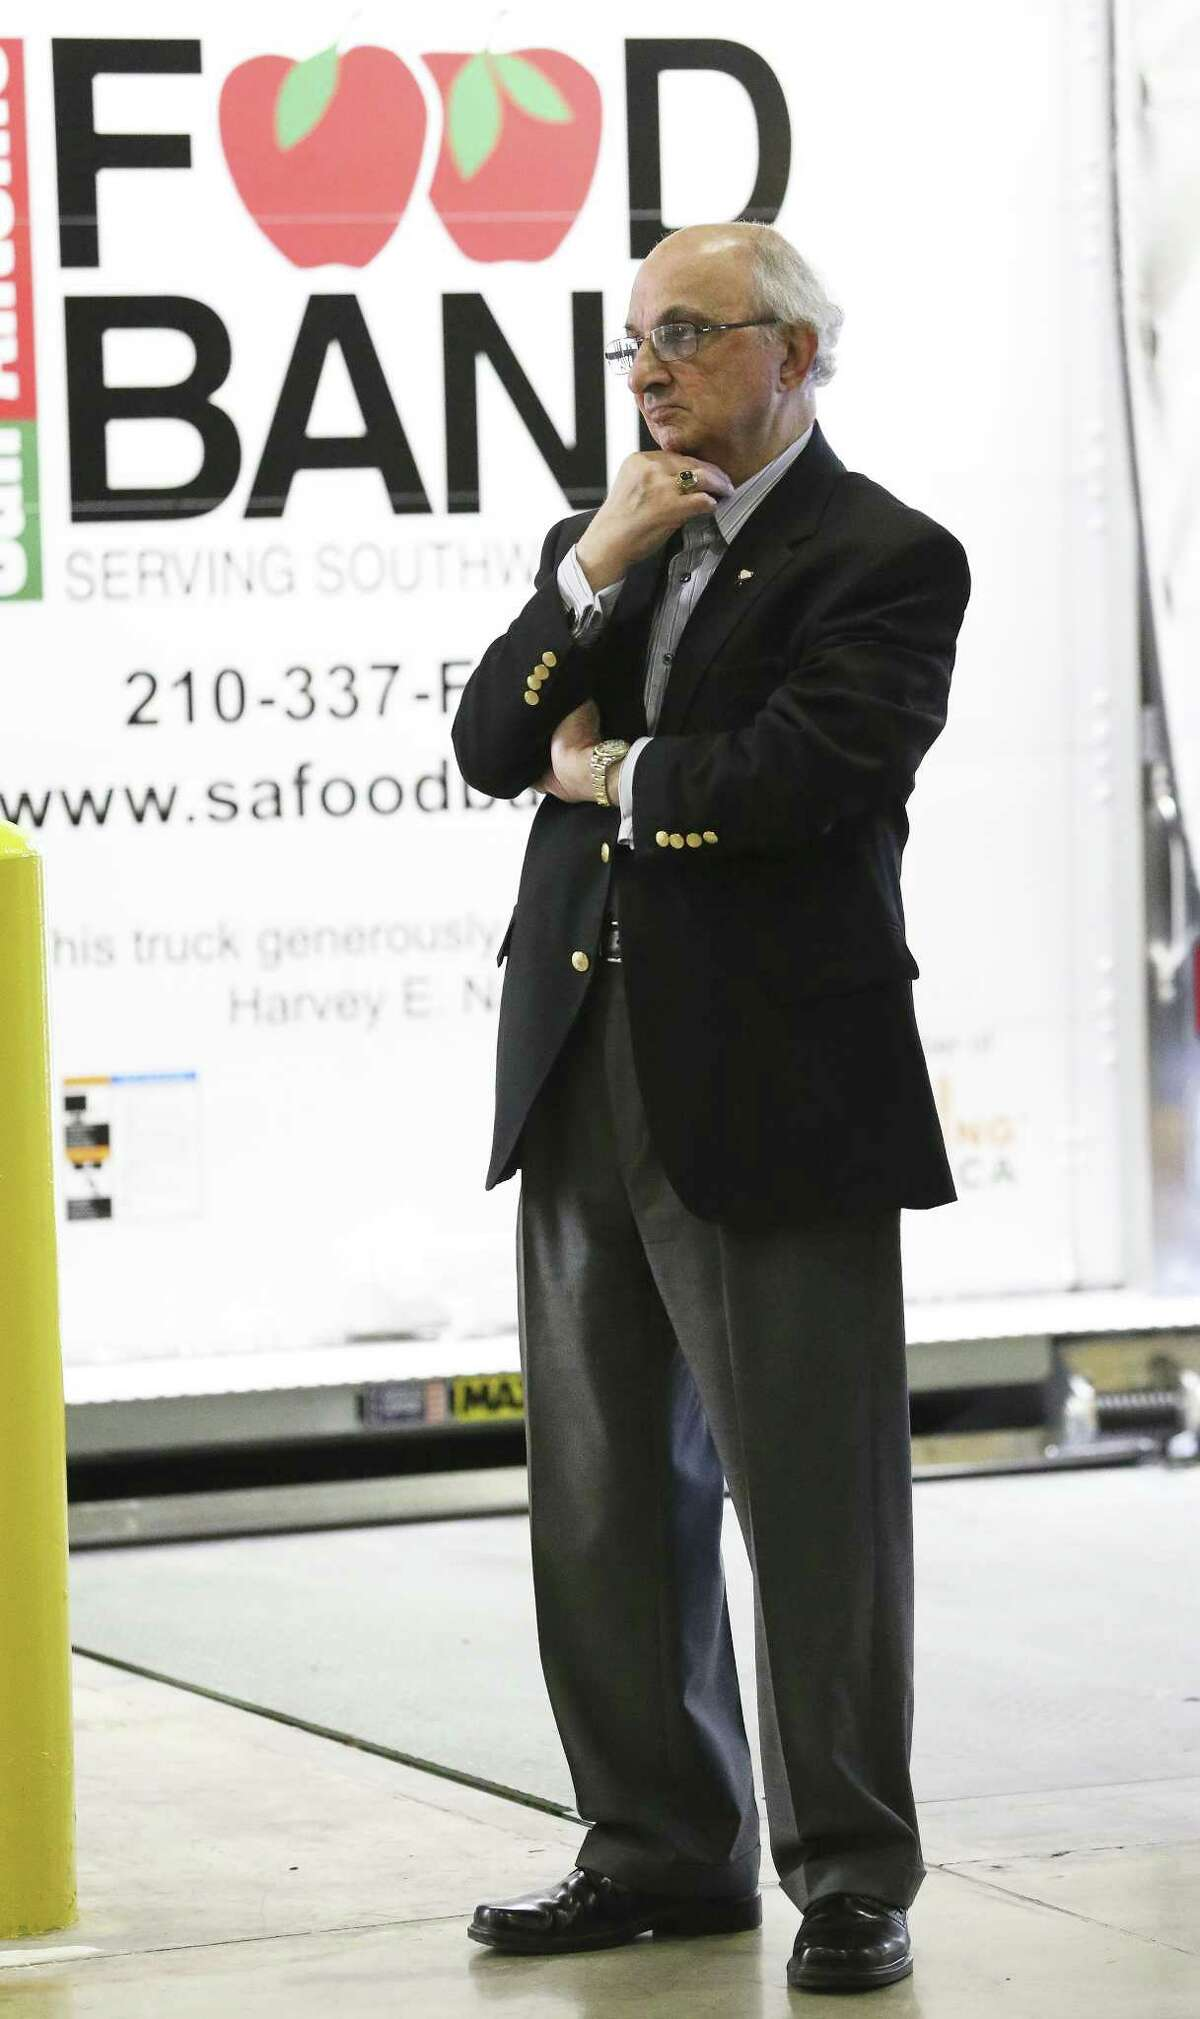 The San Antonio Food Bank receives a $1.3 million donation from philanthropist Harvey E. Najim and the Najim Family Foundation on March 7, 2018, which was used to buy 10 new delivery trucks.